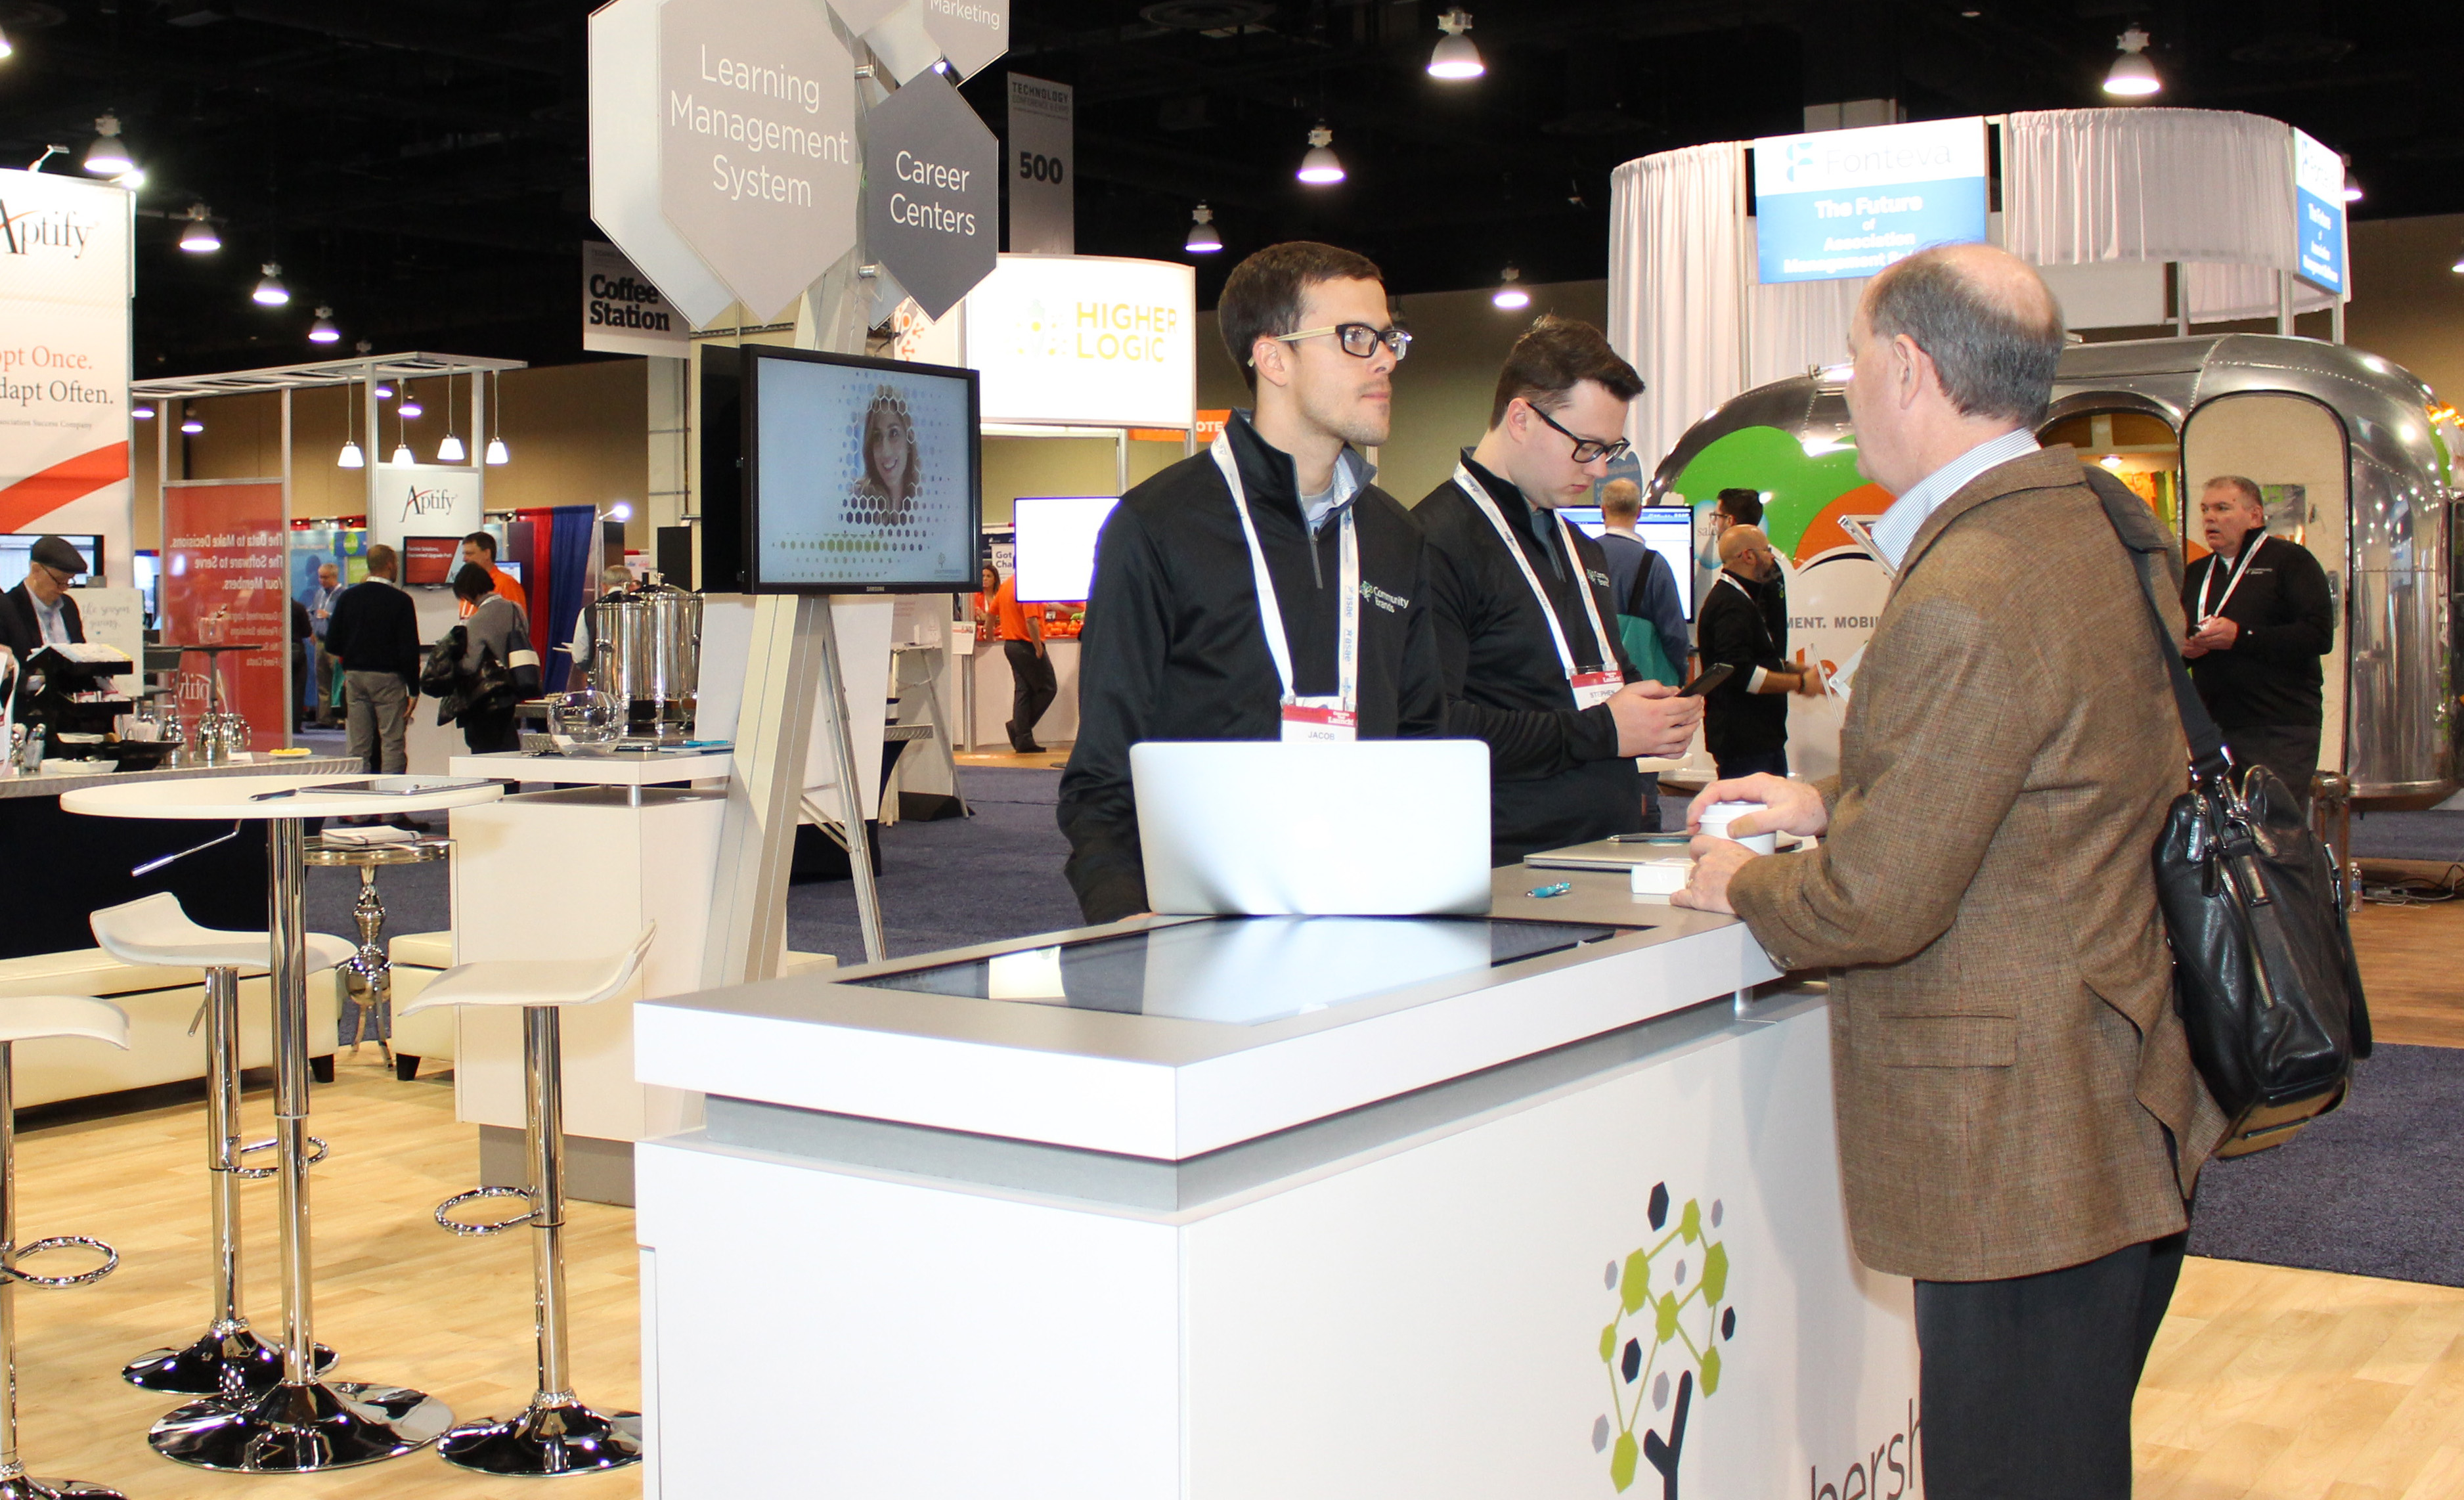 Technology Expo Standsaur : Asae technology conference emphasized innovation